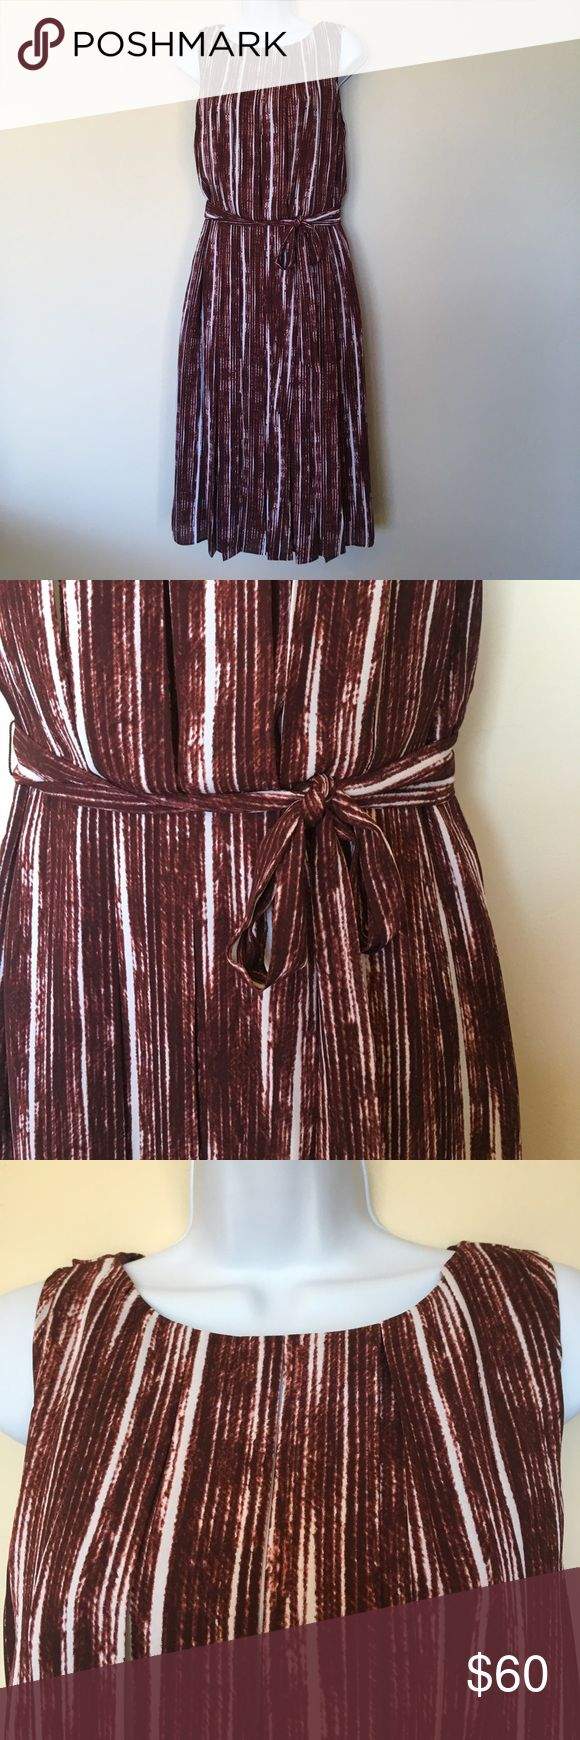 "Banana Republic dress NWOT Cute deep wine color and white with a belted tie.  Soft pleats on bodice and skirt.  Back zipper from tail bone to neck.  Hem length is 27.25"" from waist.  Never worn. Banana Republic Dresses Midi"